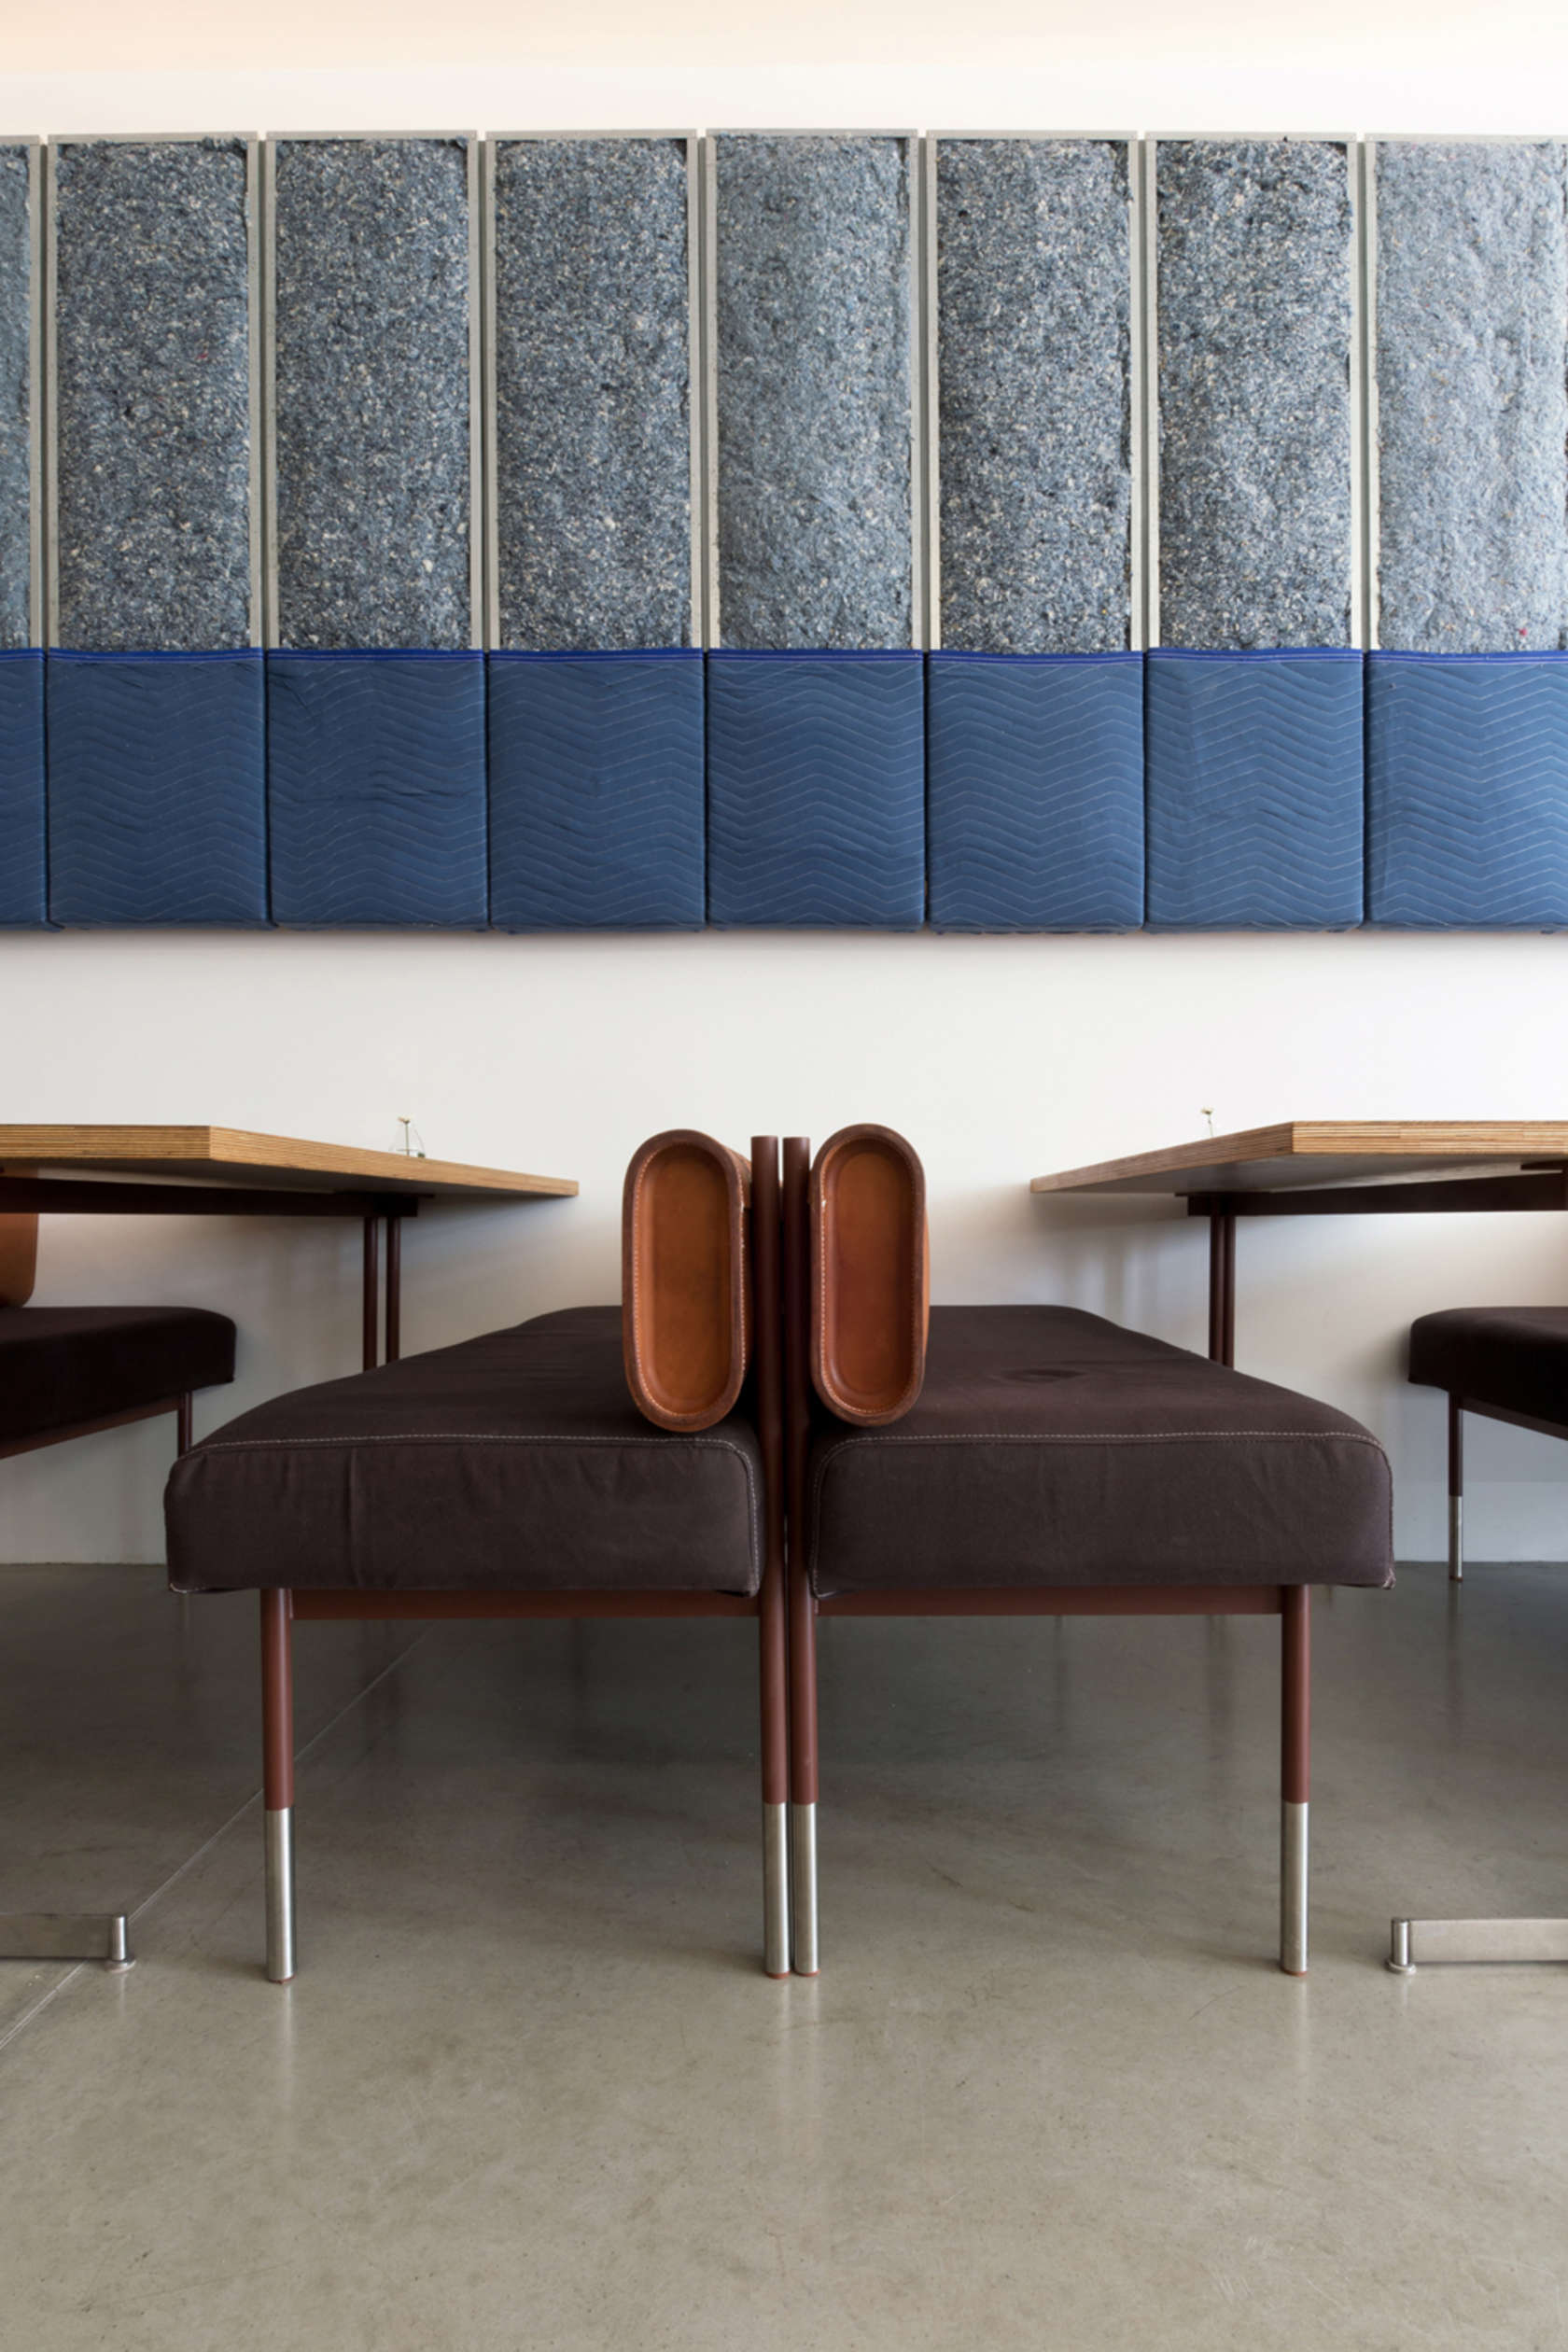 Scott and Scott Architects: Torafuku Modern Asian Eatery